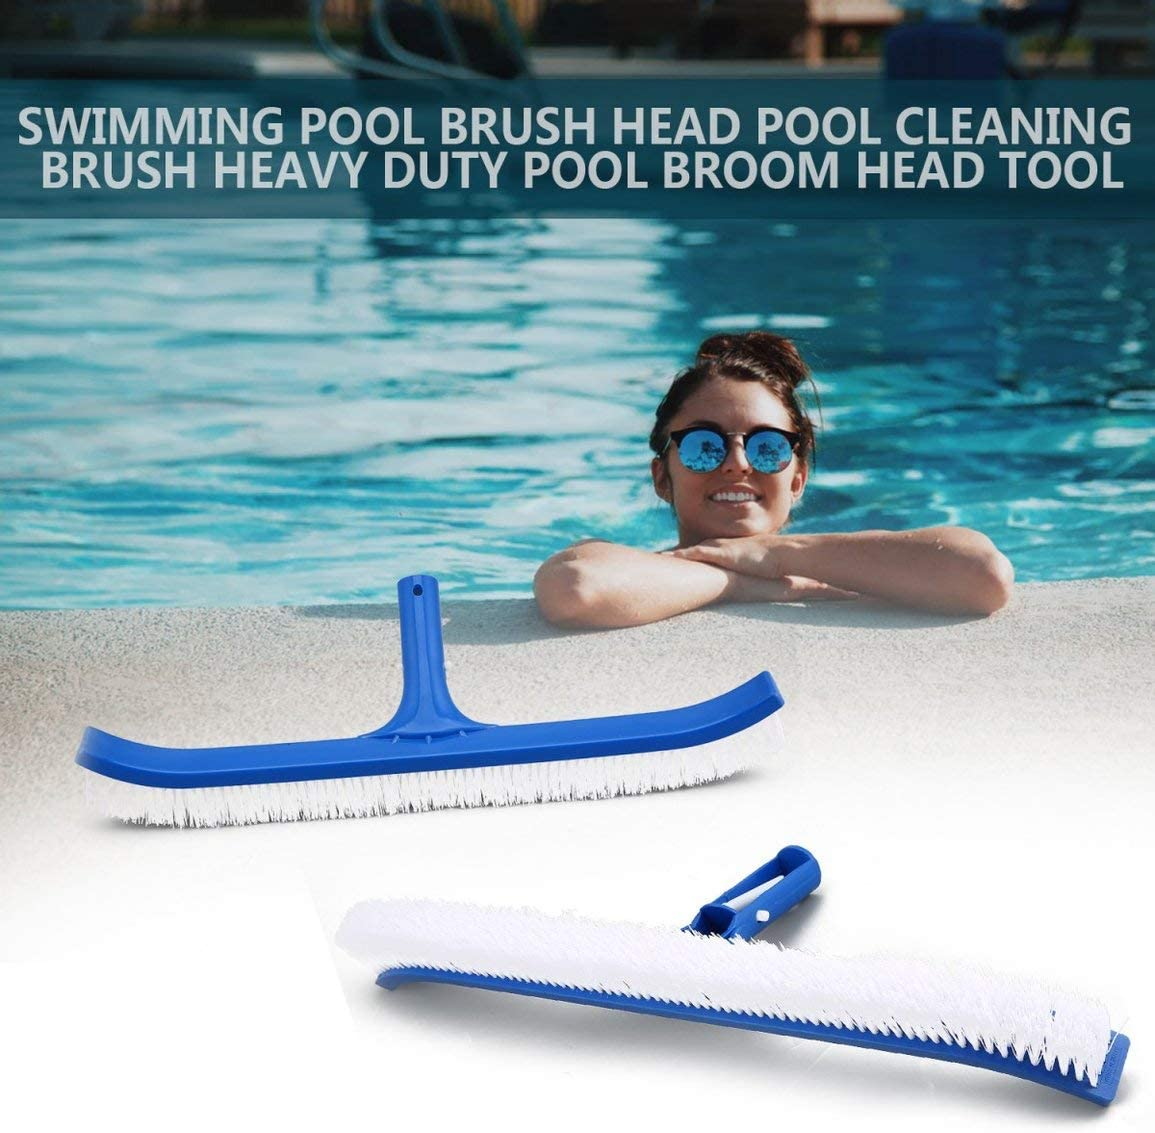 Fantasyworld Pool Brush Head Pool Cleaning Brush Heavy Duty Pool Broom Head Tool for All Pools Wall Tiles and Floors